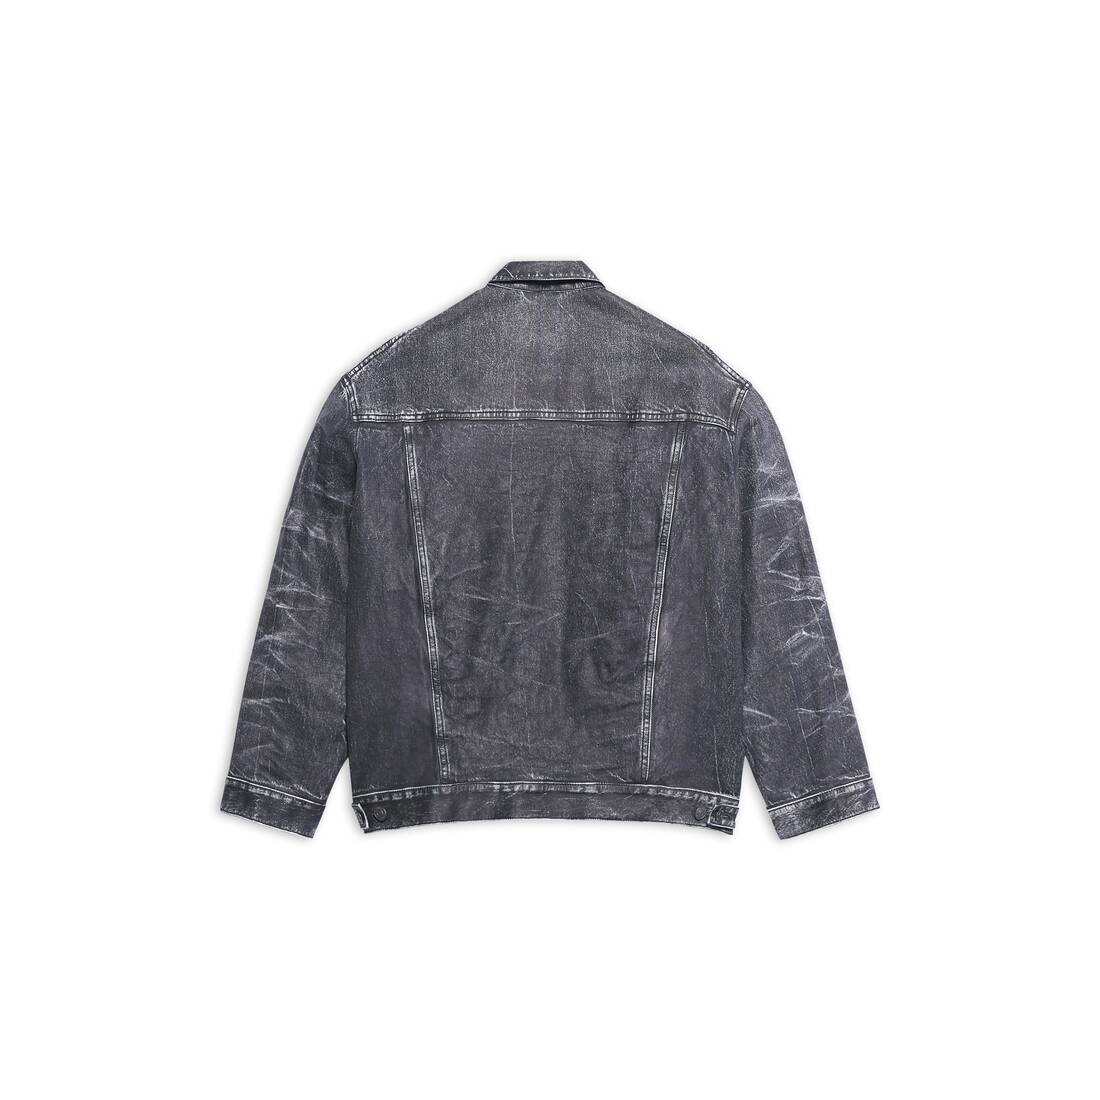 Display zoomed version of trompe-l'œil denim jacket 2